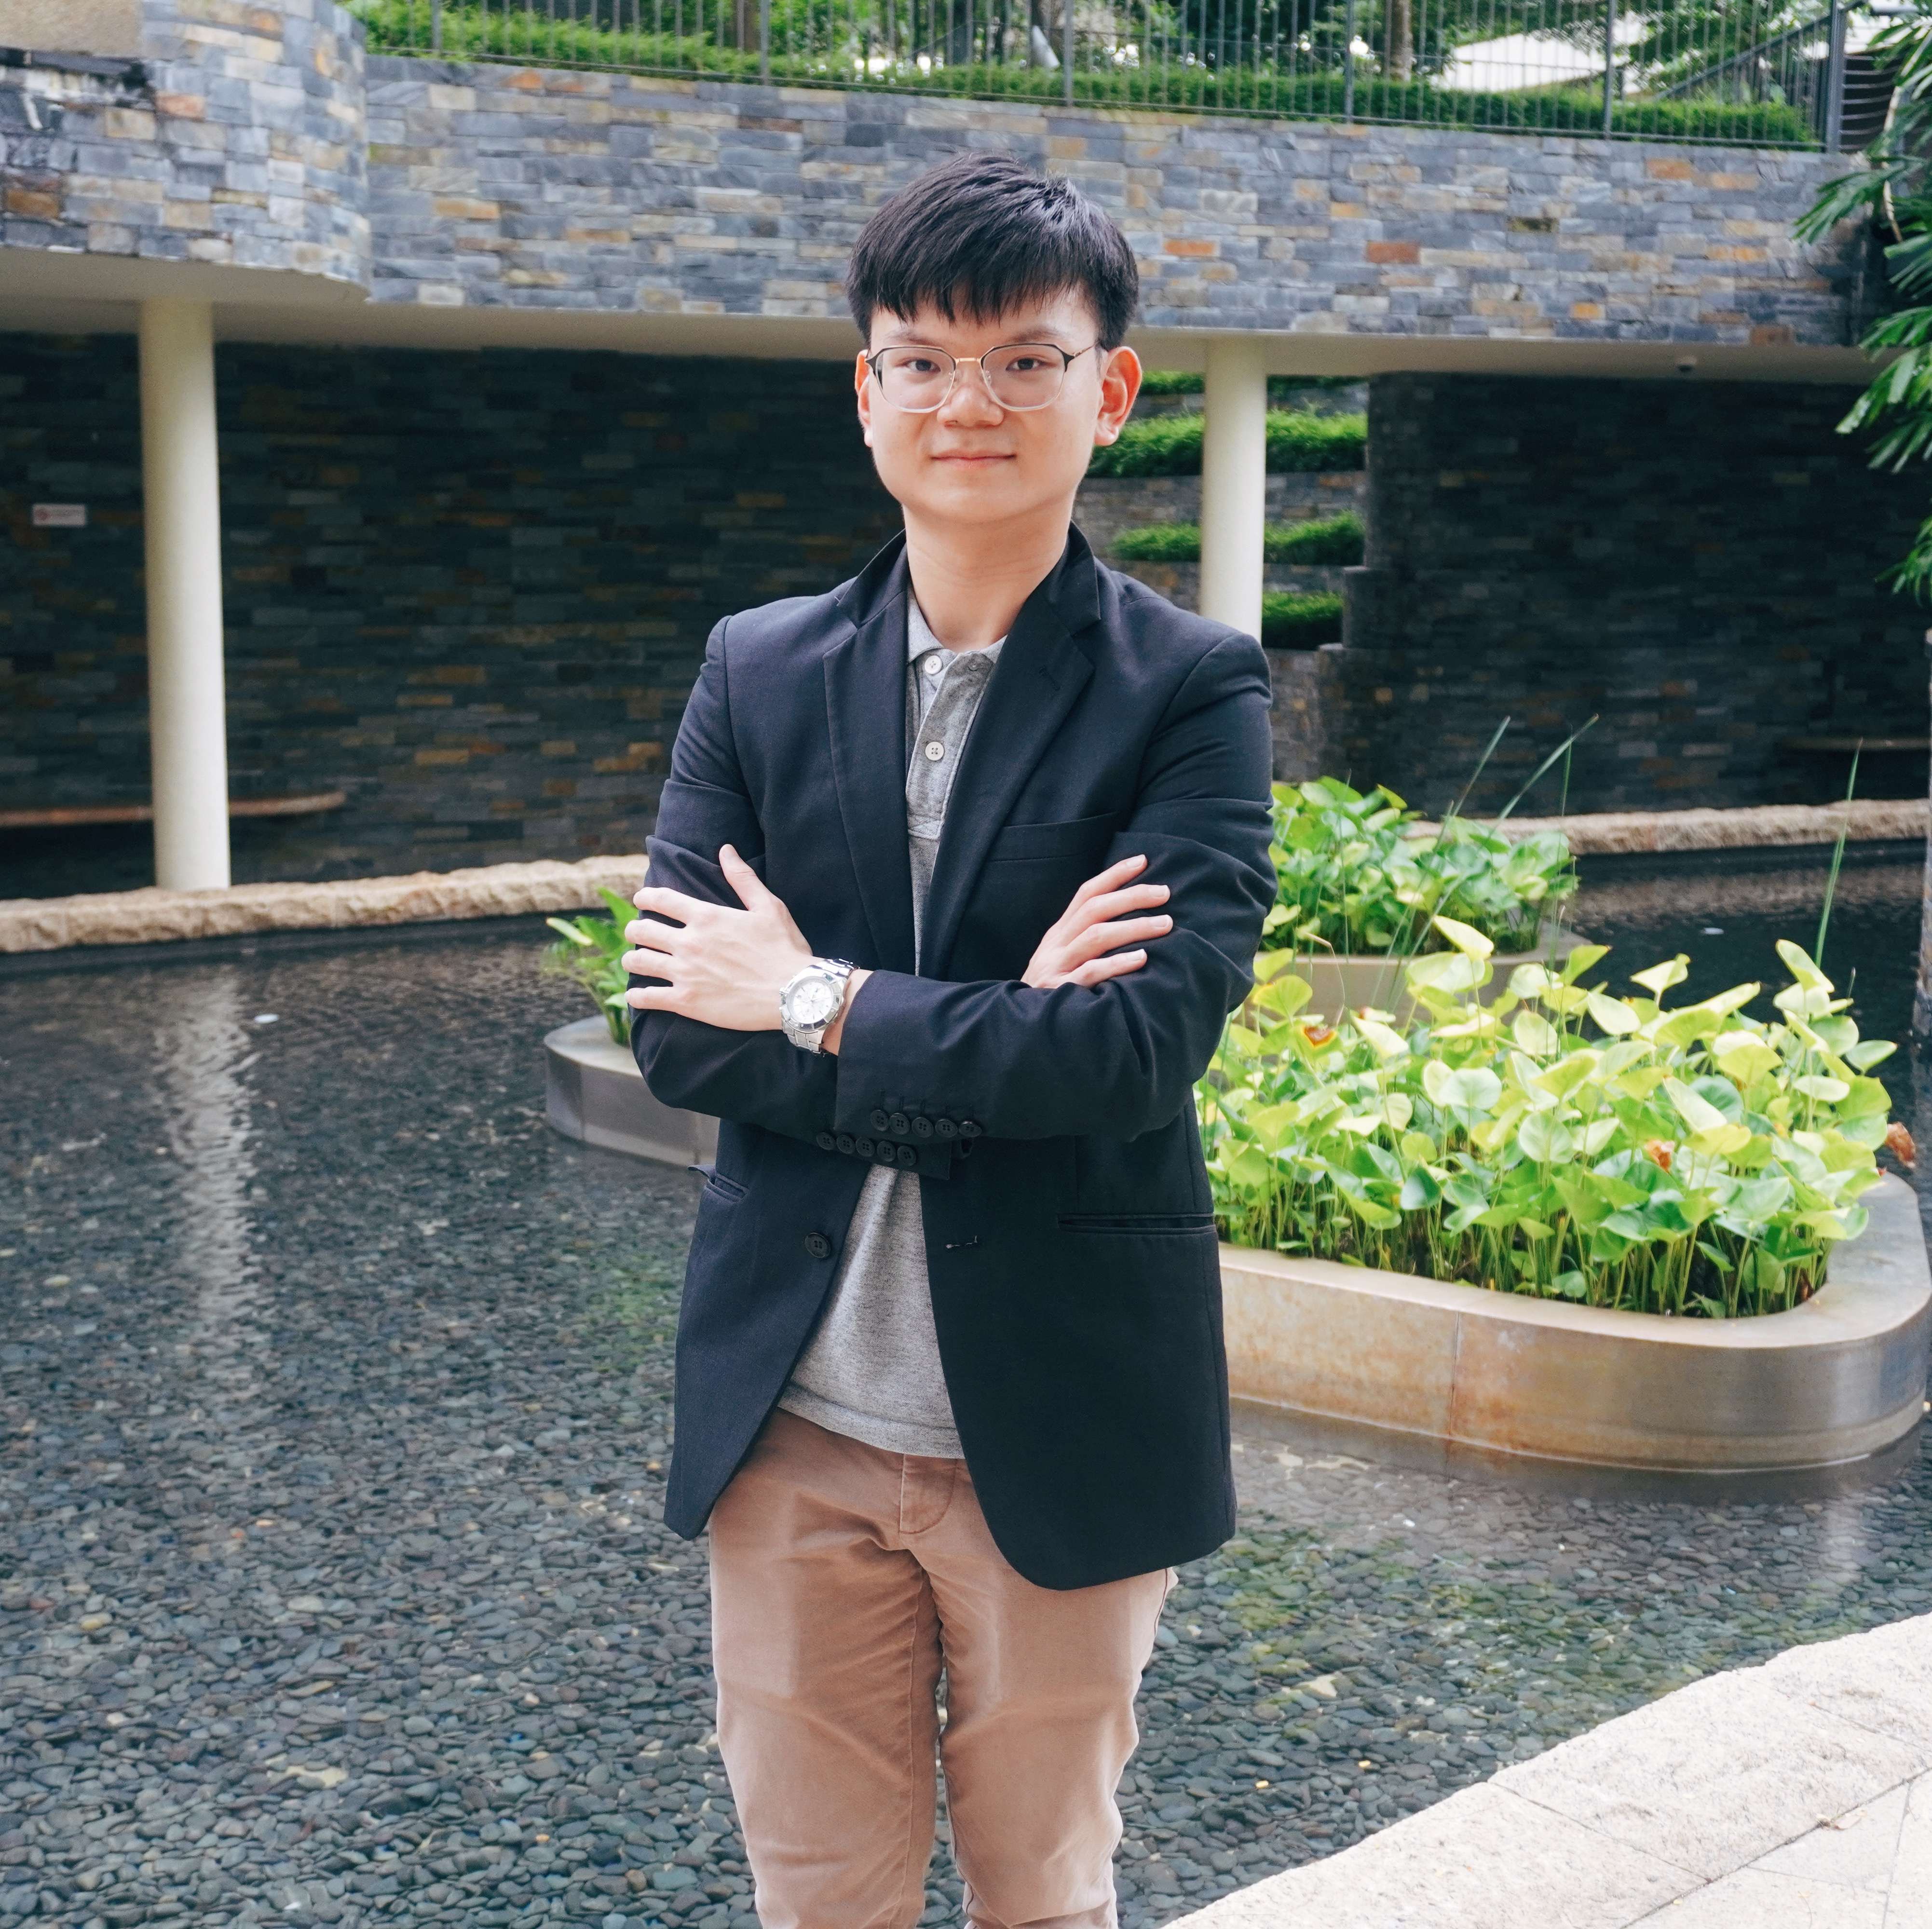 How a 26 Year Old Daniel Ang Impacts Thousands of Lives Through a Successful Financial Education Company